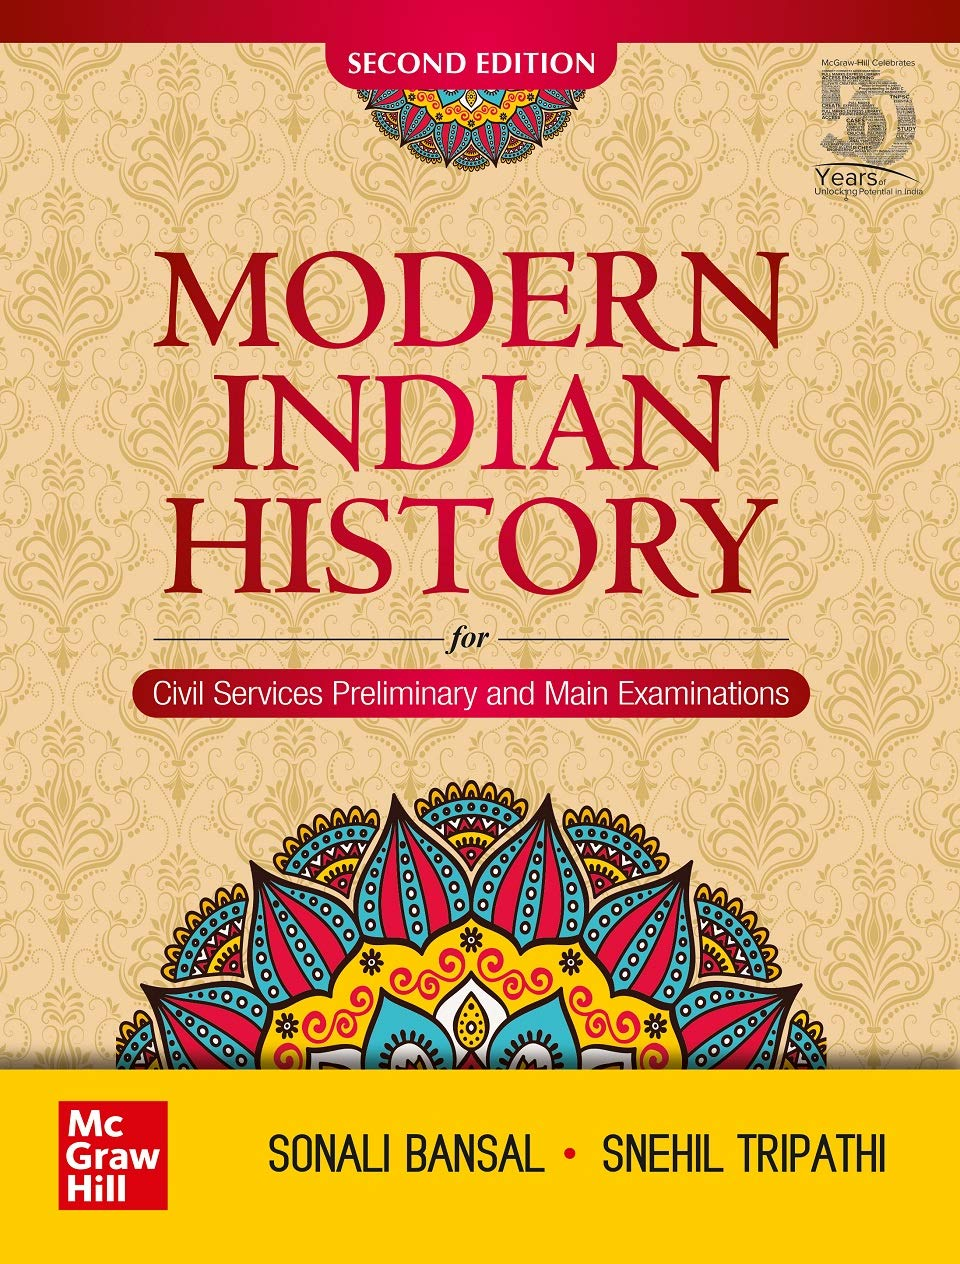 Modern Indian History – Second Edition   For Civil Services Preliminary and Main Examinations